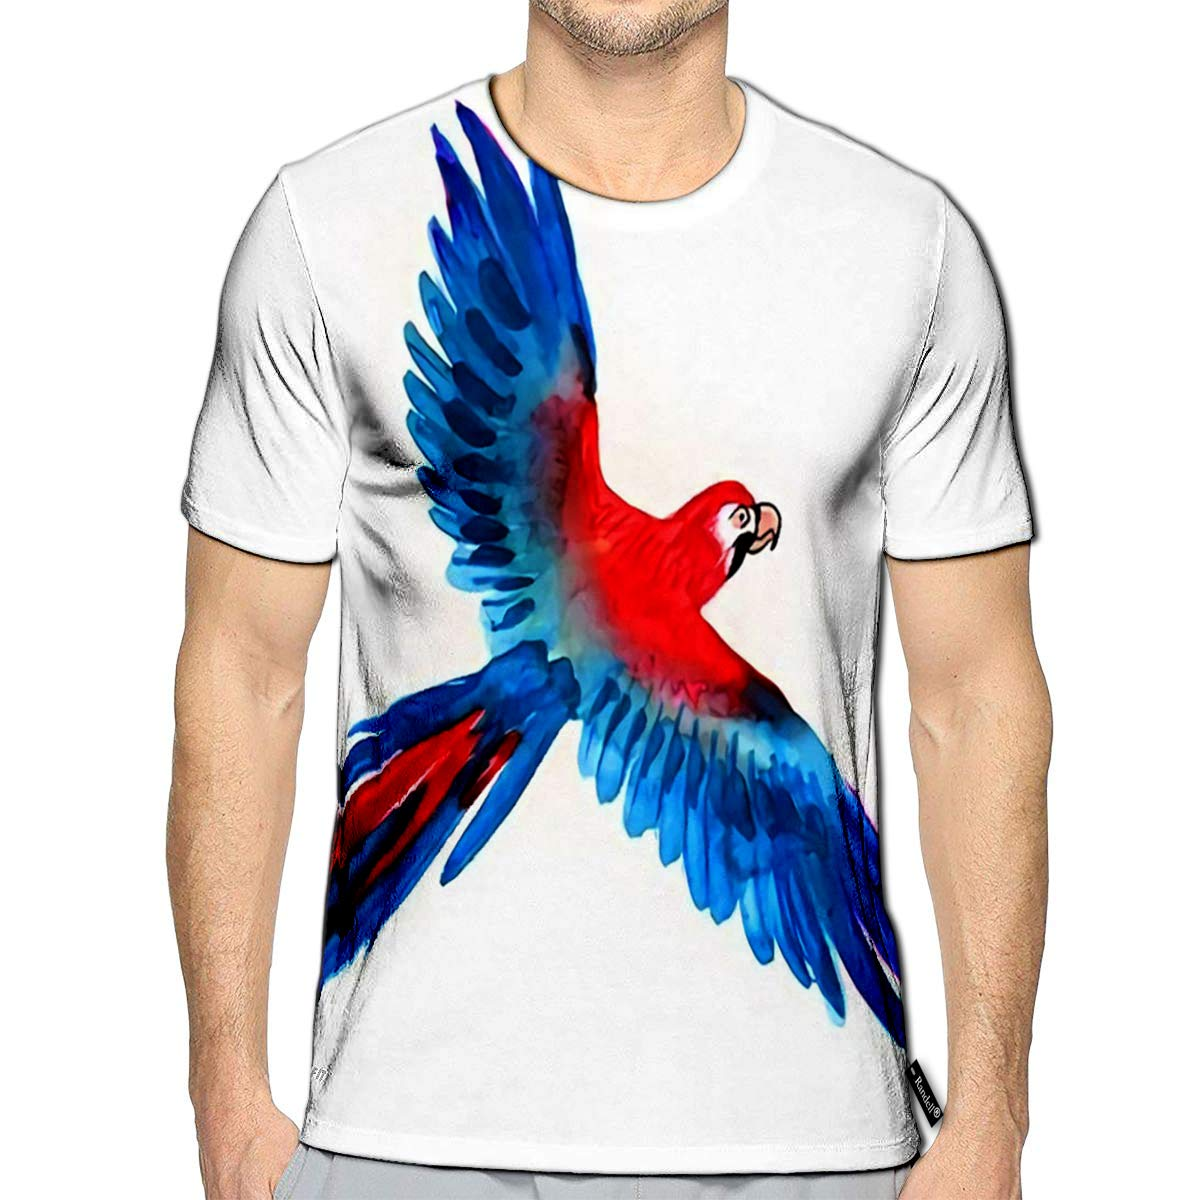 3D Printed T-Shirts It May Be Not Be Easy But We Will Worth It Short Sleeve Tops